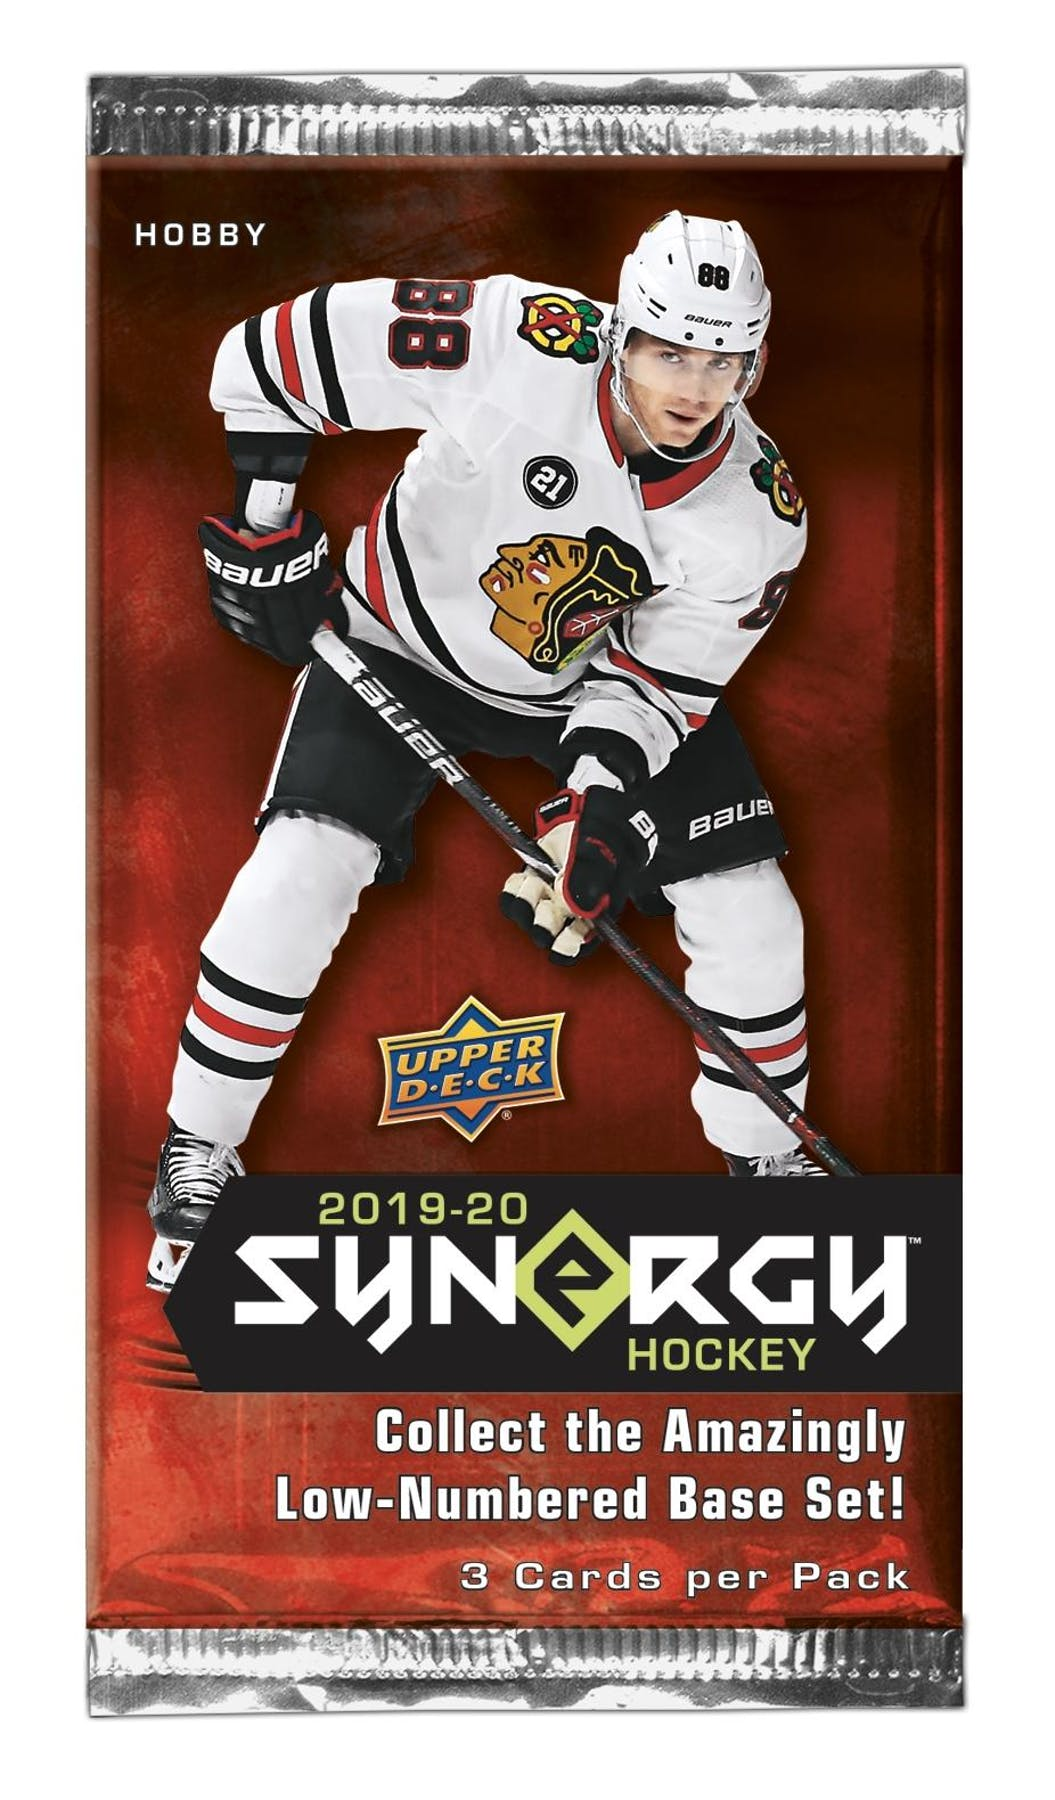 2019-20 Upper Deck Synergy Hockey Hobby Pack | Eastridge Sports Cards